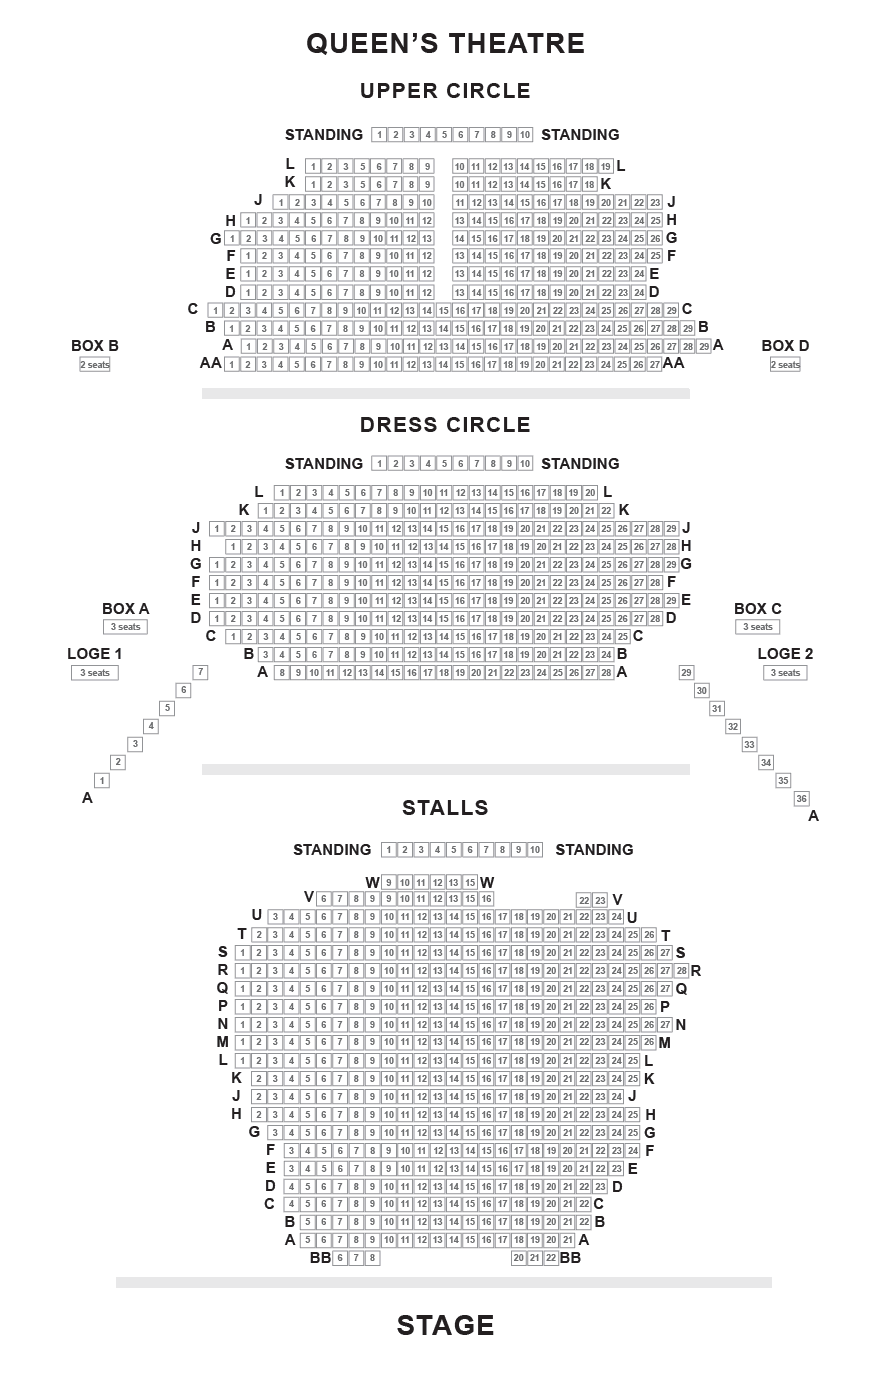 Sondheim Theatre Seating Plan